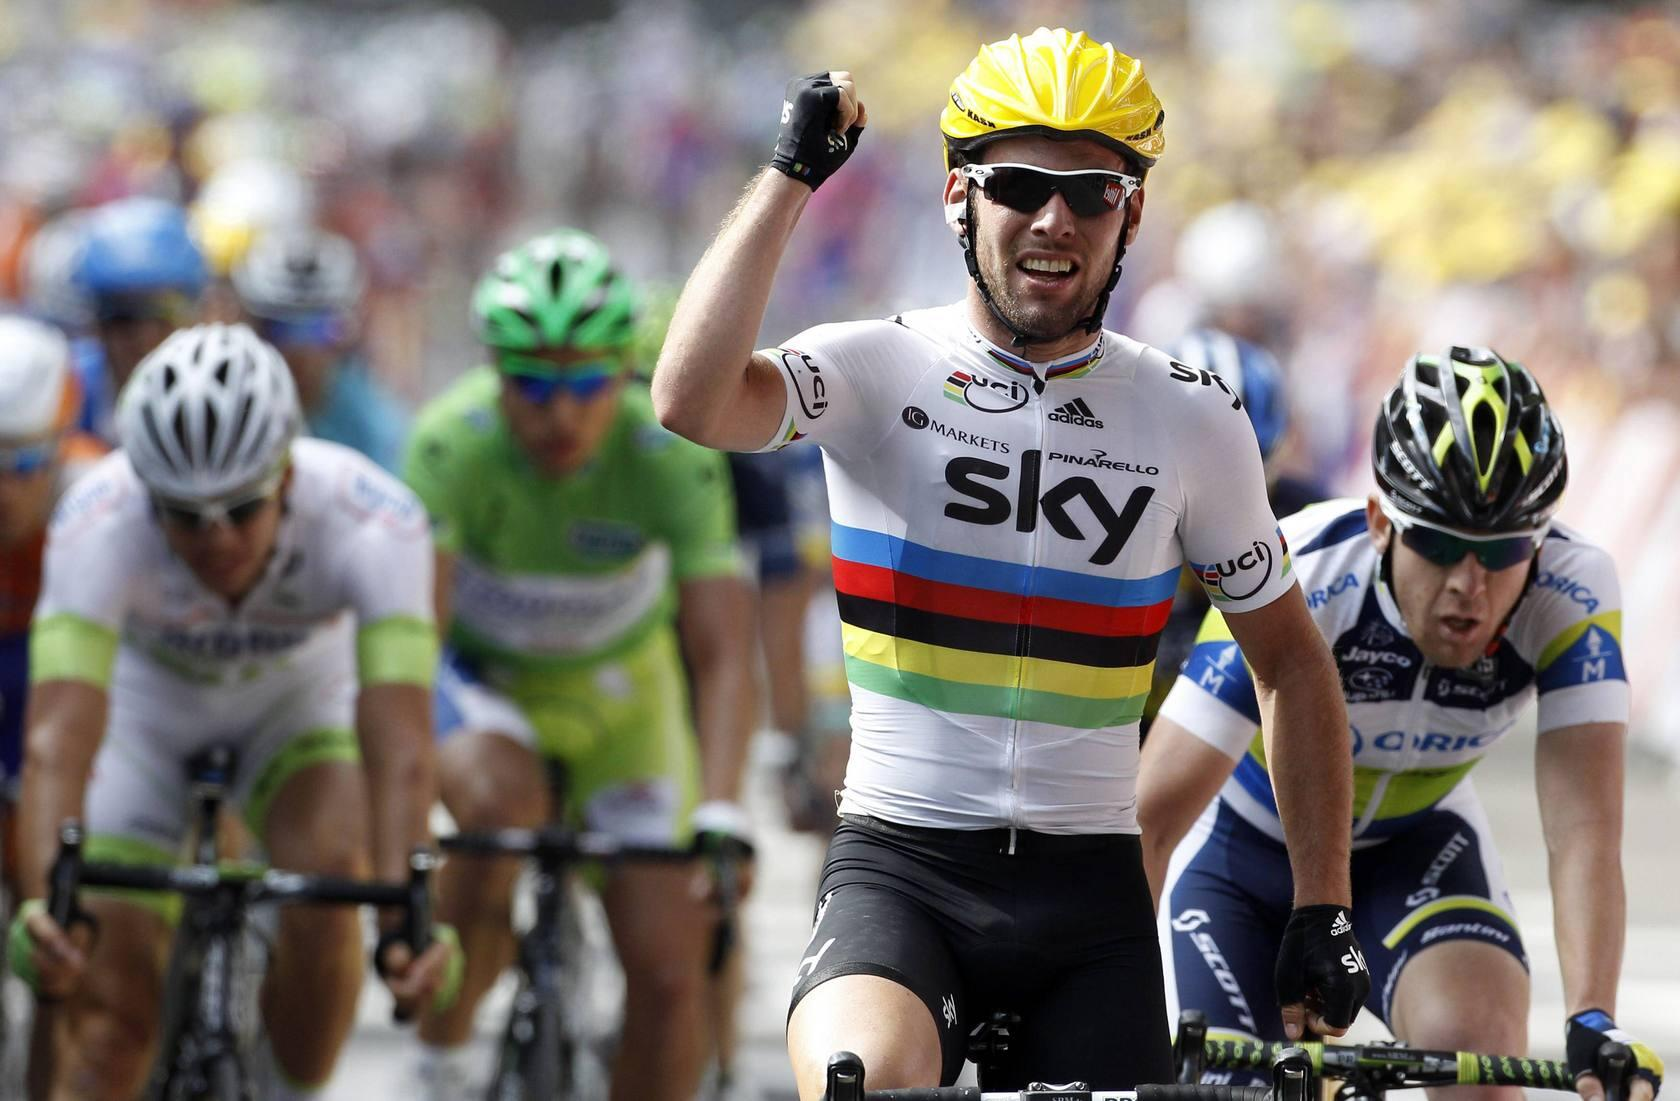 Mark Cavendish se impone en la segunda etapa del Tour de Francia